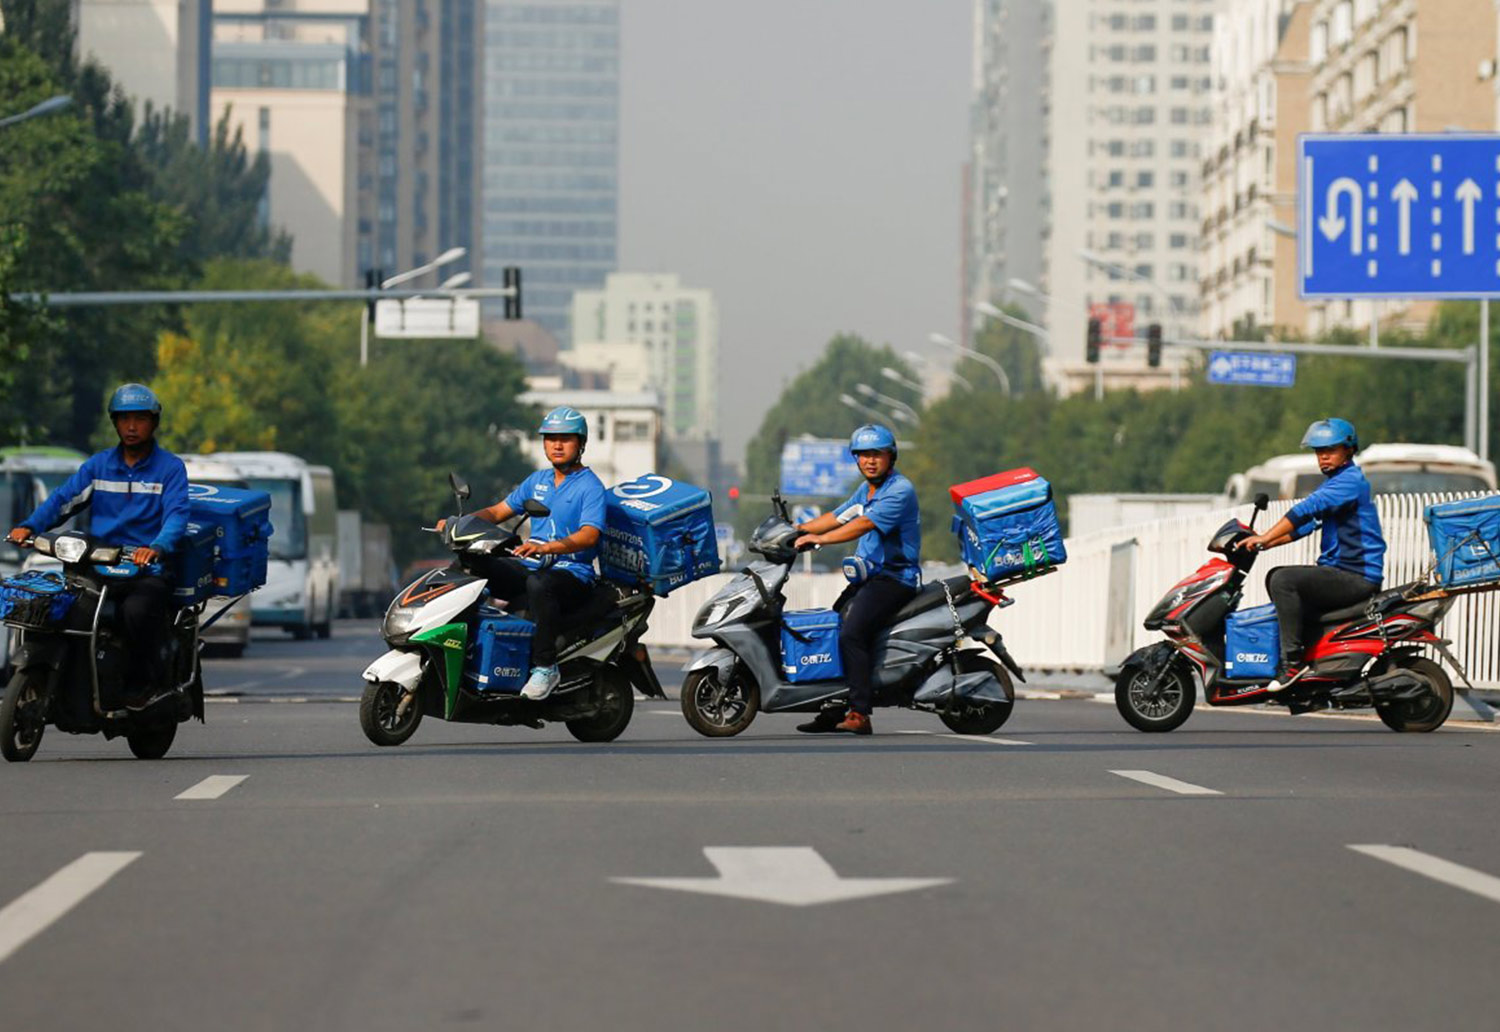 Image of delivery drivers: Credit: https://www.wsj.com/articles/chinas-alibaba-adds-to-food-delivery-bet-1522662784